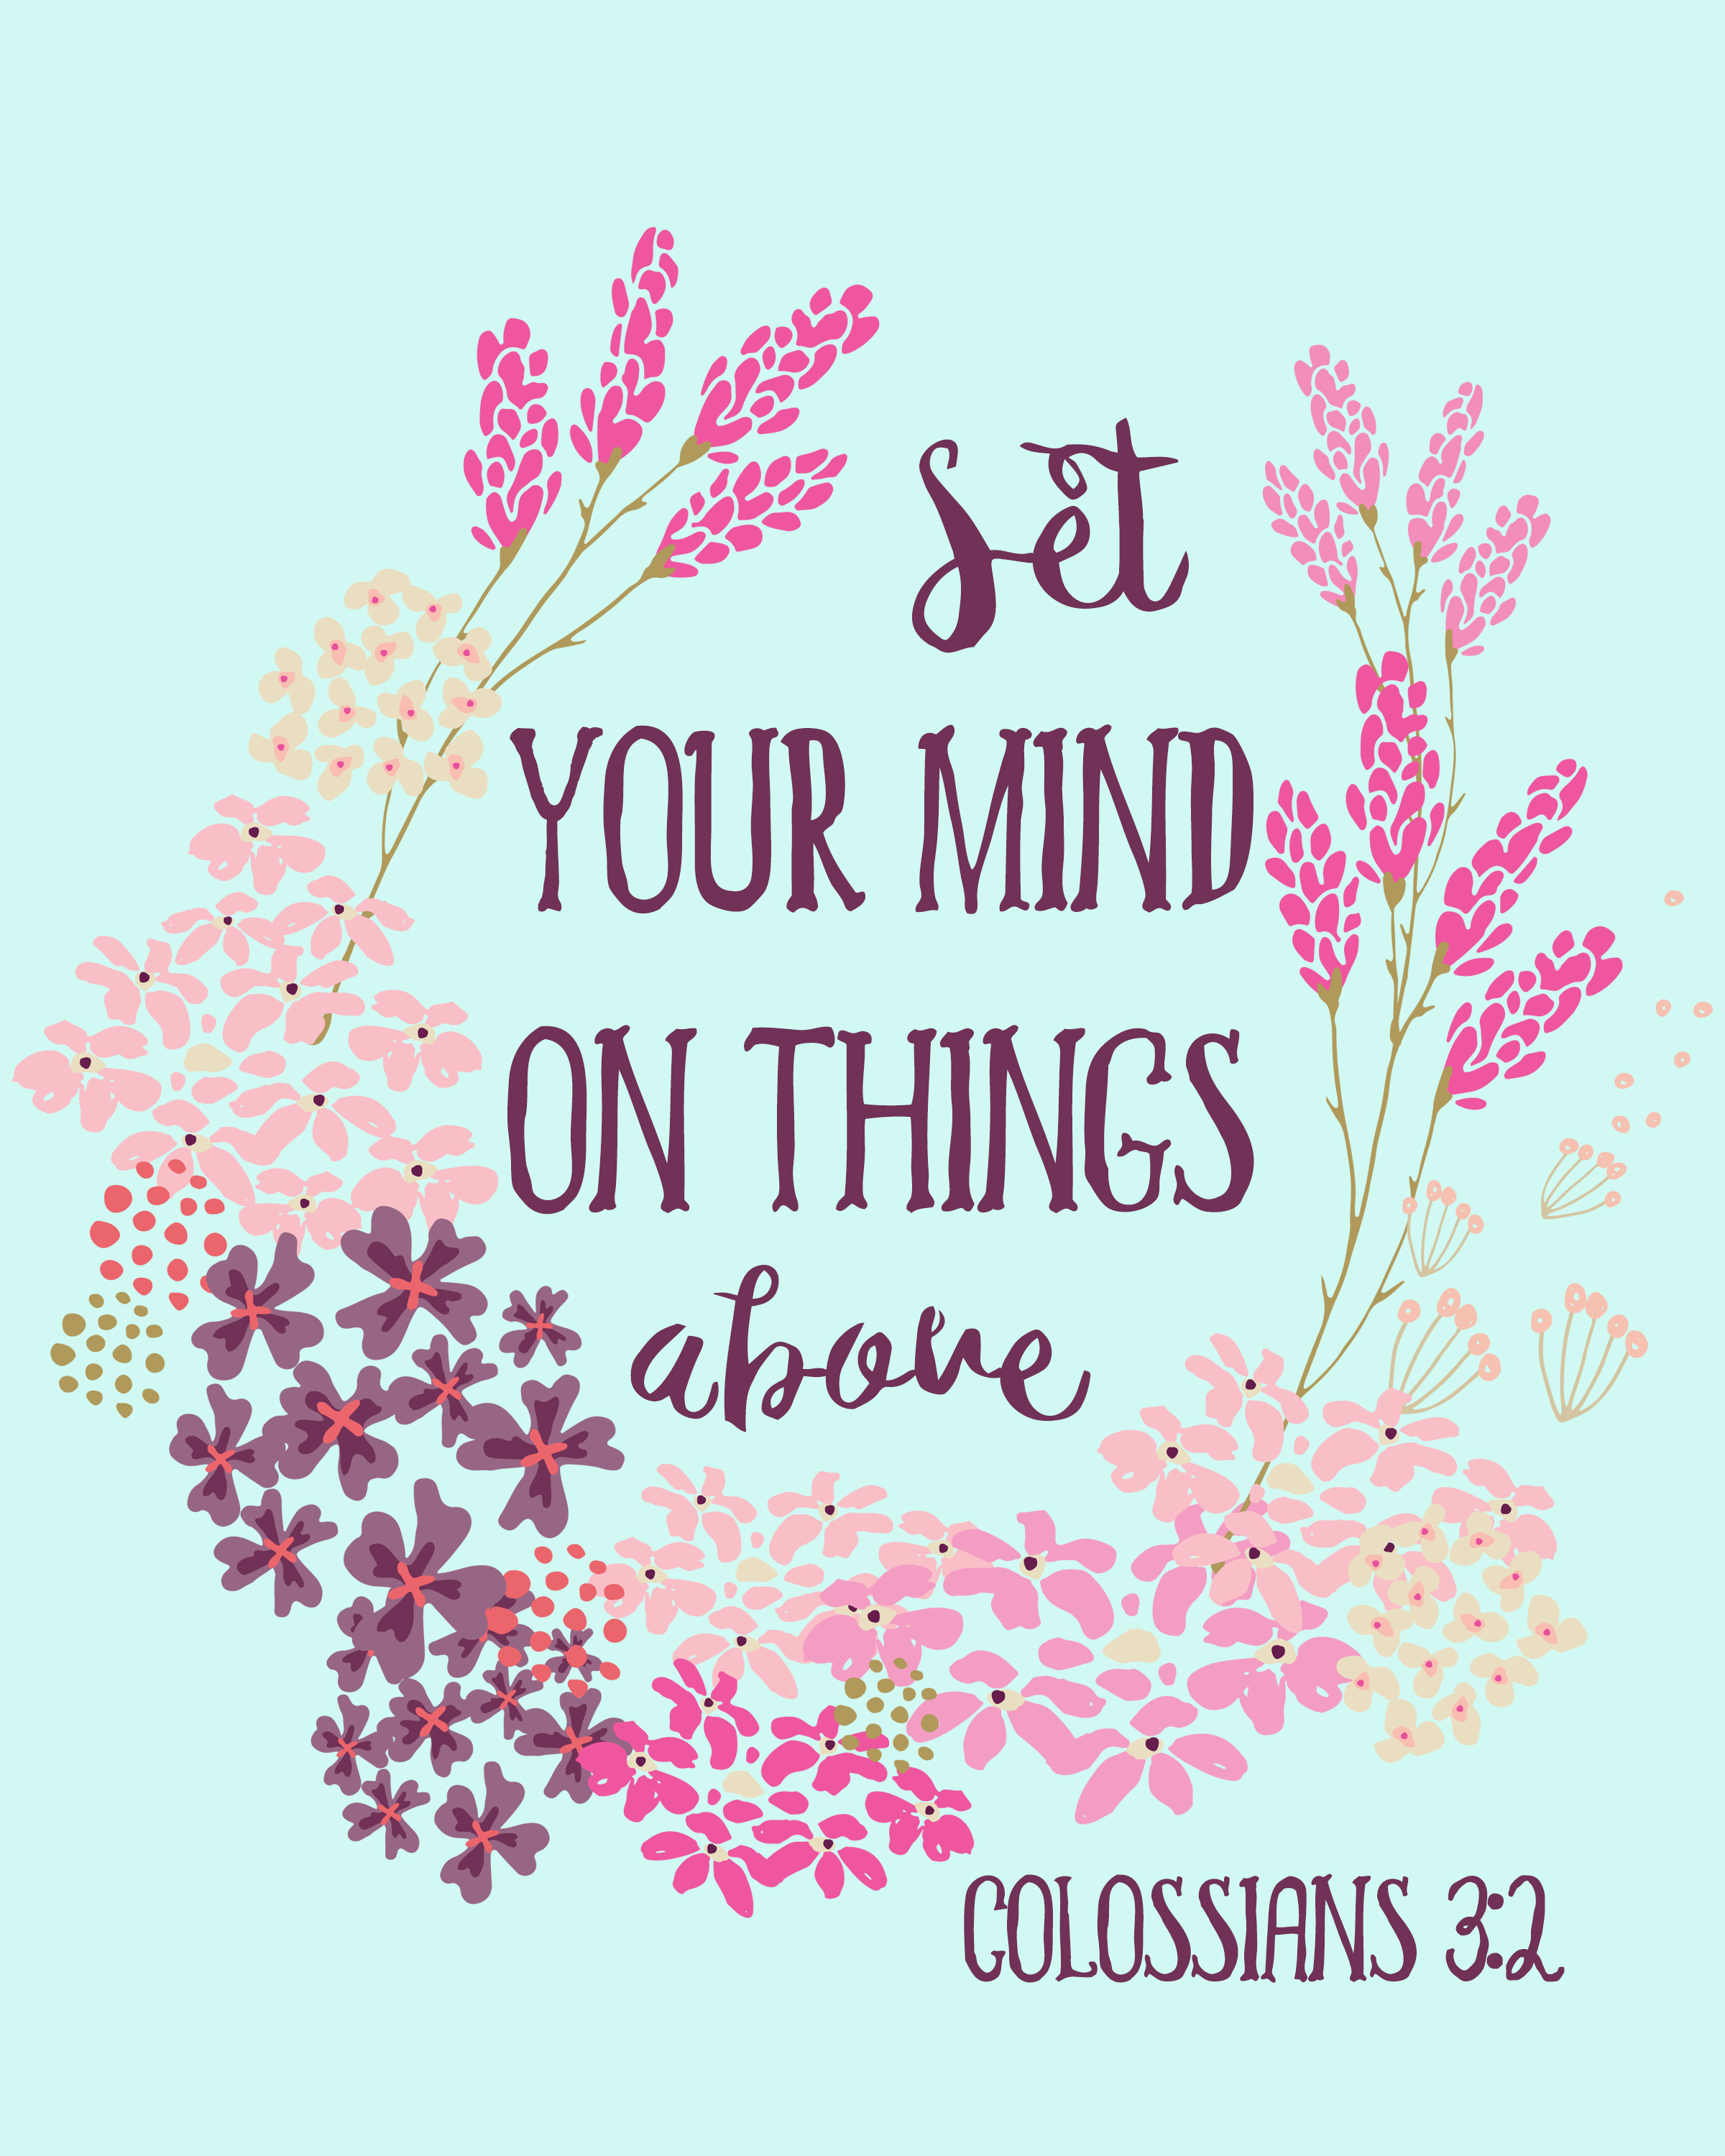 Colossians 3:2 - Bible Verse Free Printable -Rays Of Bliss - Free Printable Bible Verses